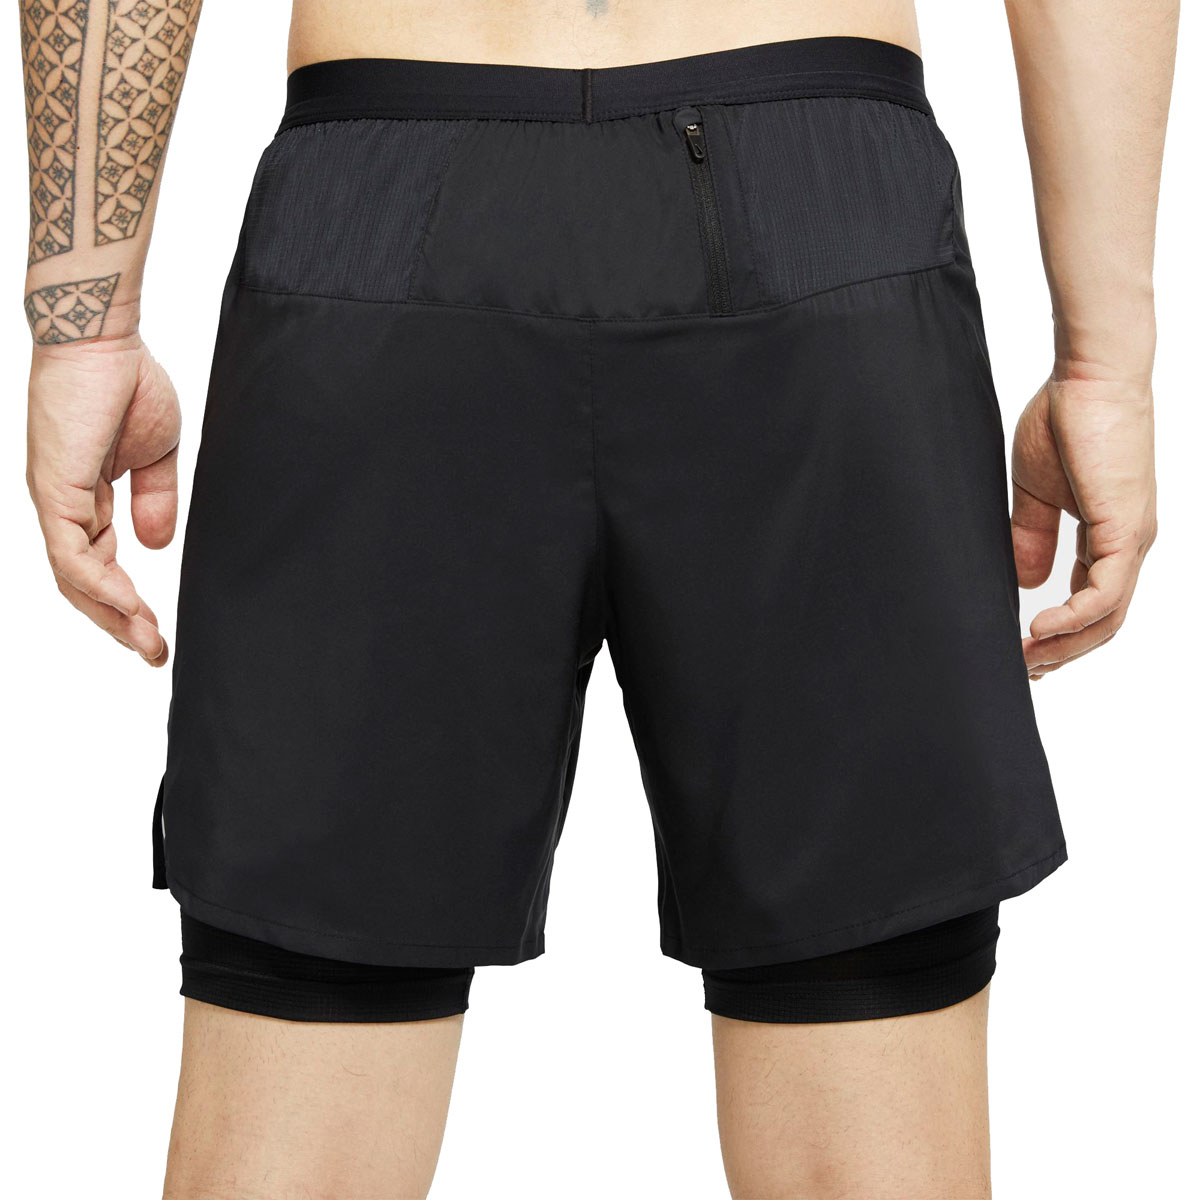 "Men's Nike Flex Stride 7"" 2-In-1 Running Shorts - Color: Black/Reflective Silver - Size: XXL, Black/Reflective Silver, large, image 2"